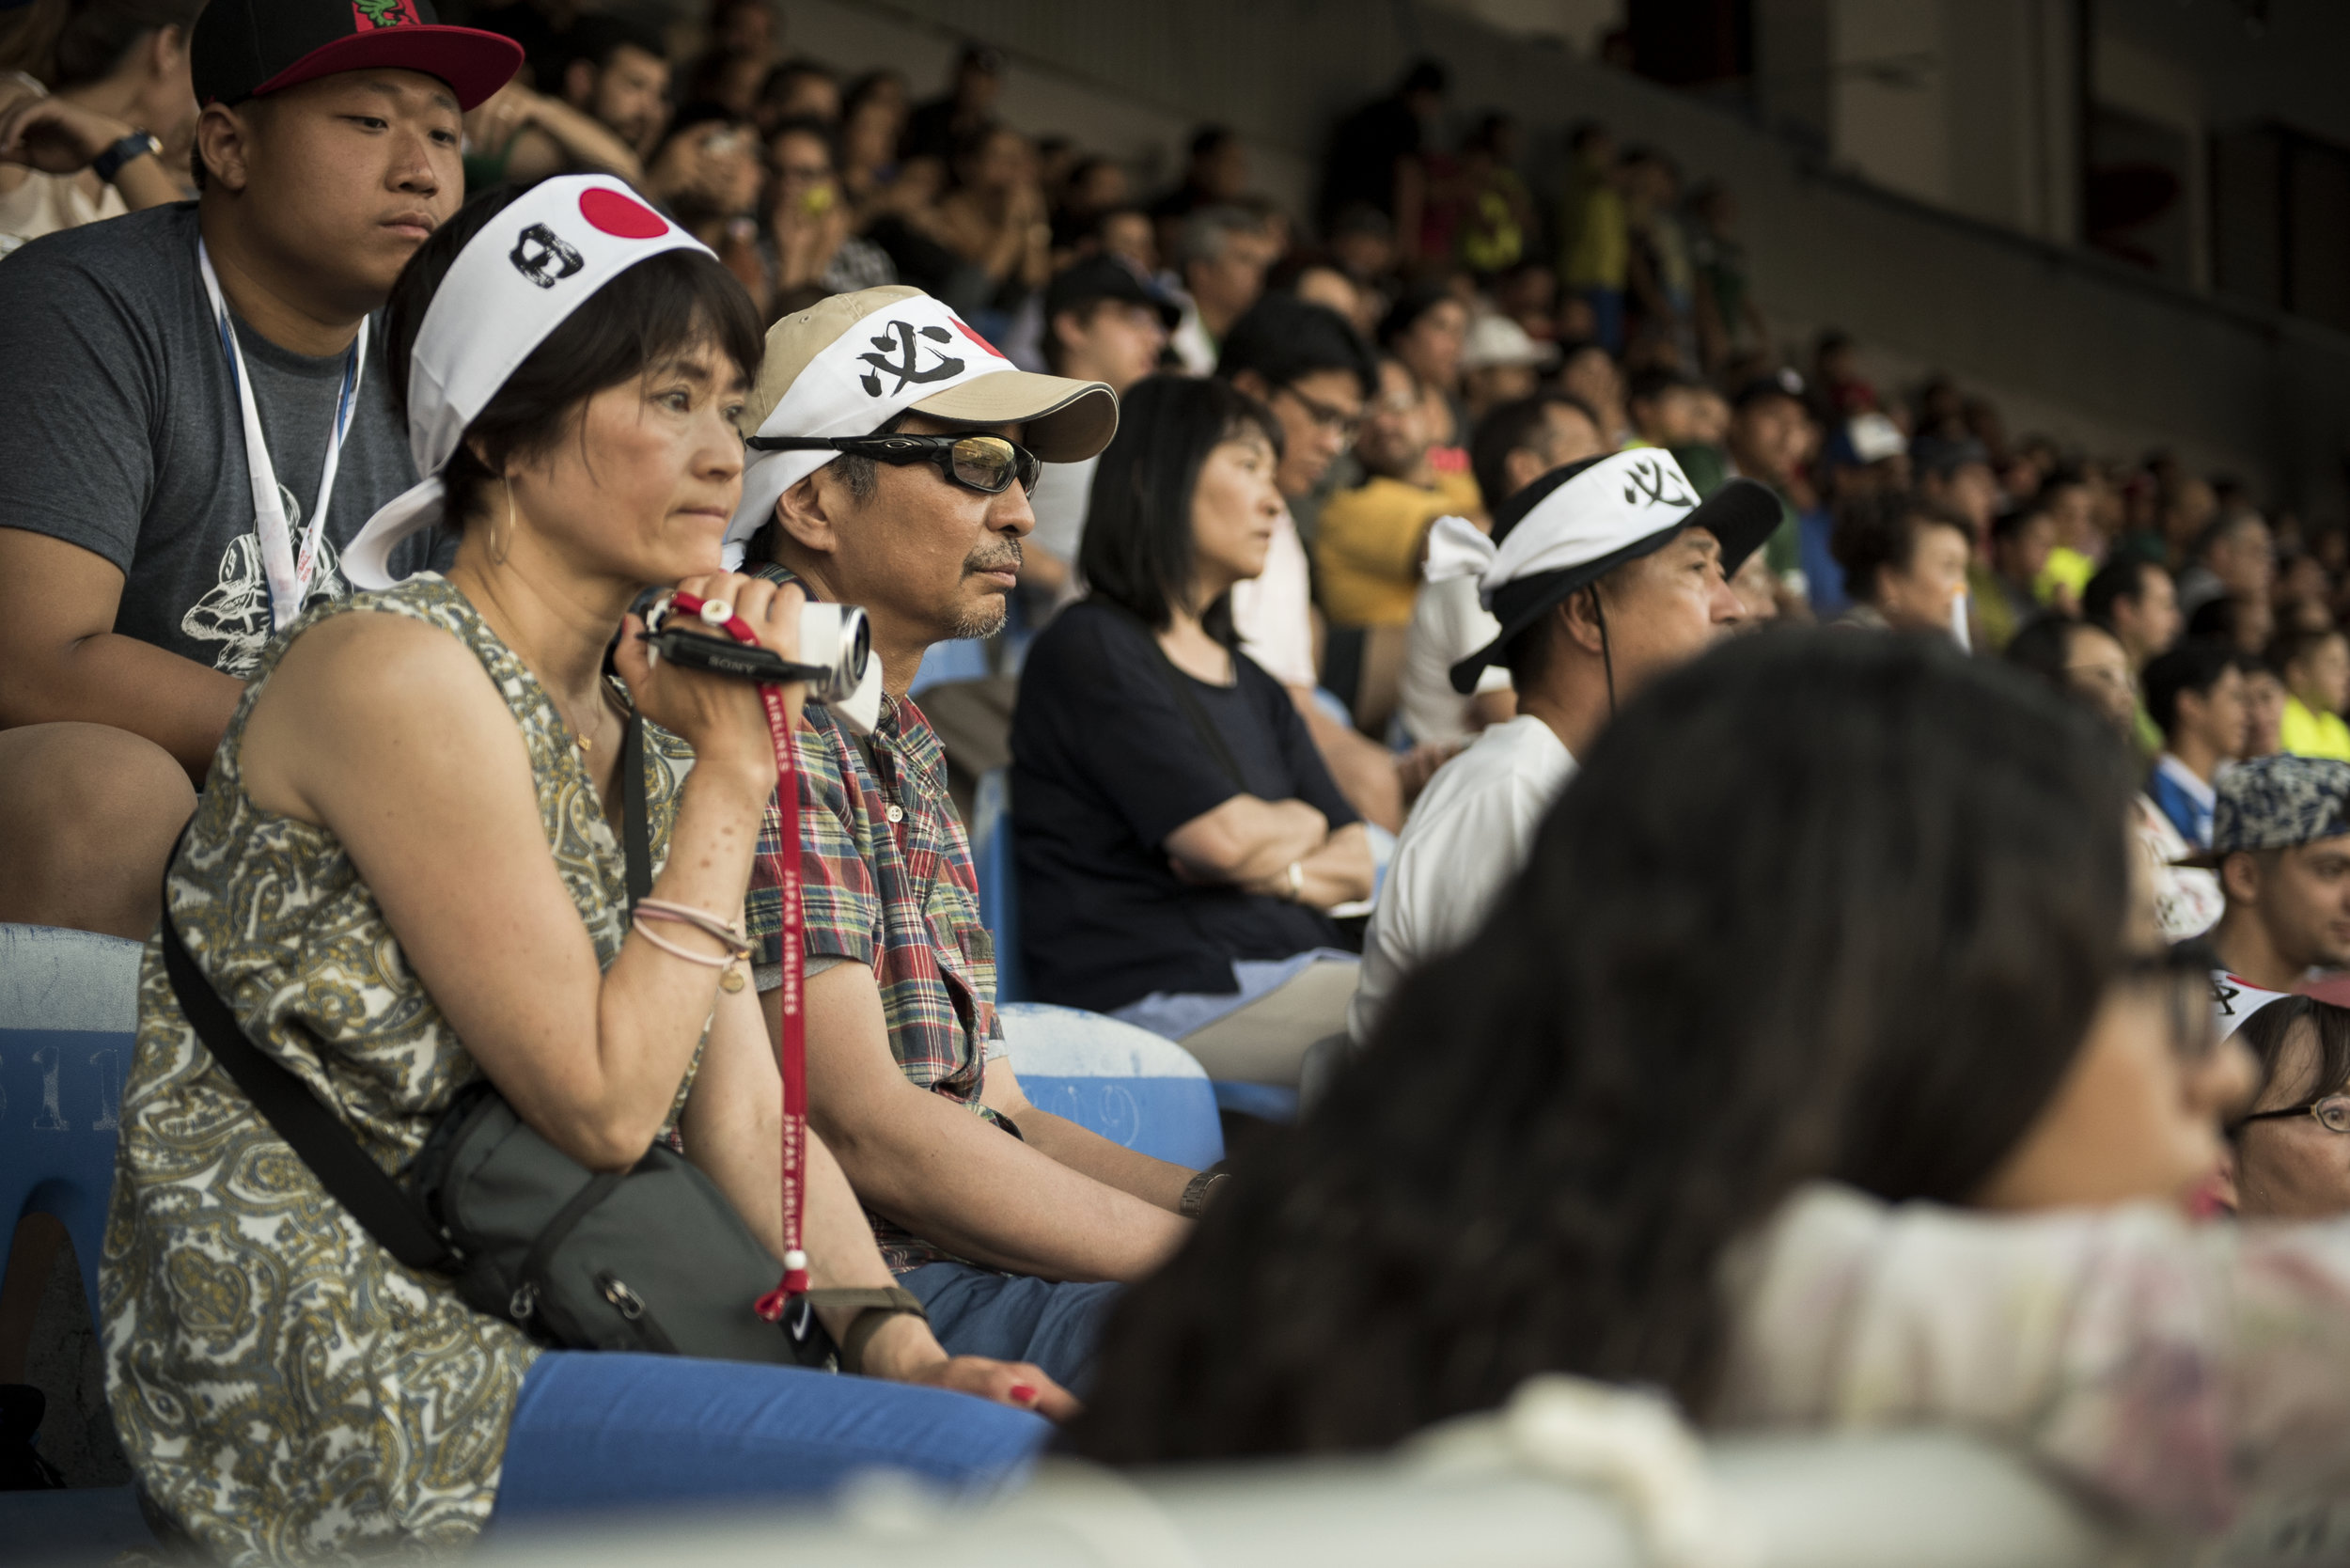 Japanese parents watch anxiously as Japan battles Mexico at the 2016 American Football World University Championship, ultimately losing 36-3 on June 08, 2016 in Monterrey, Mexico.